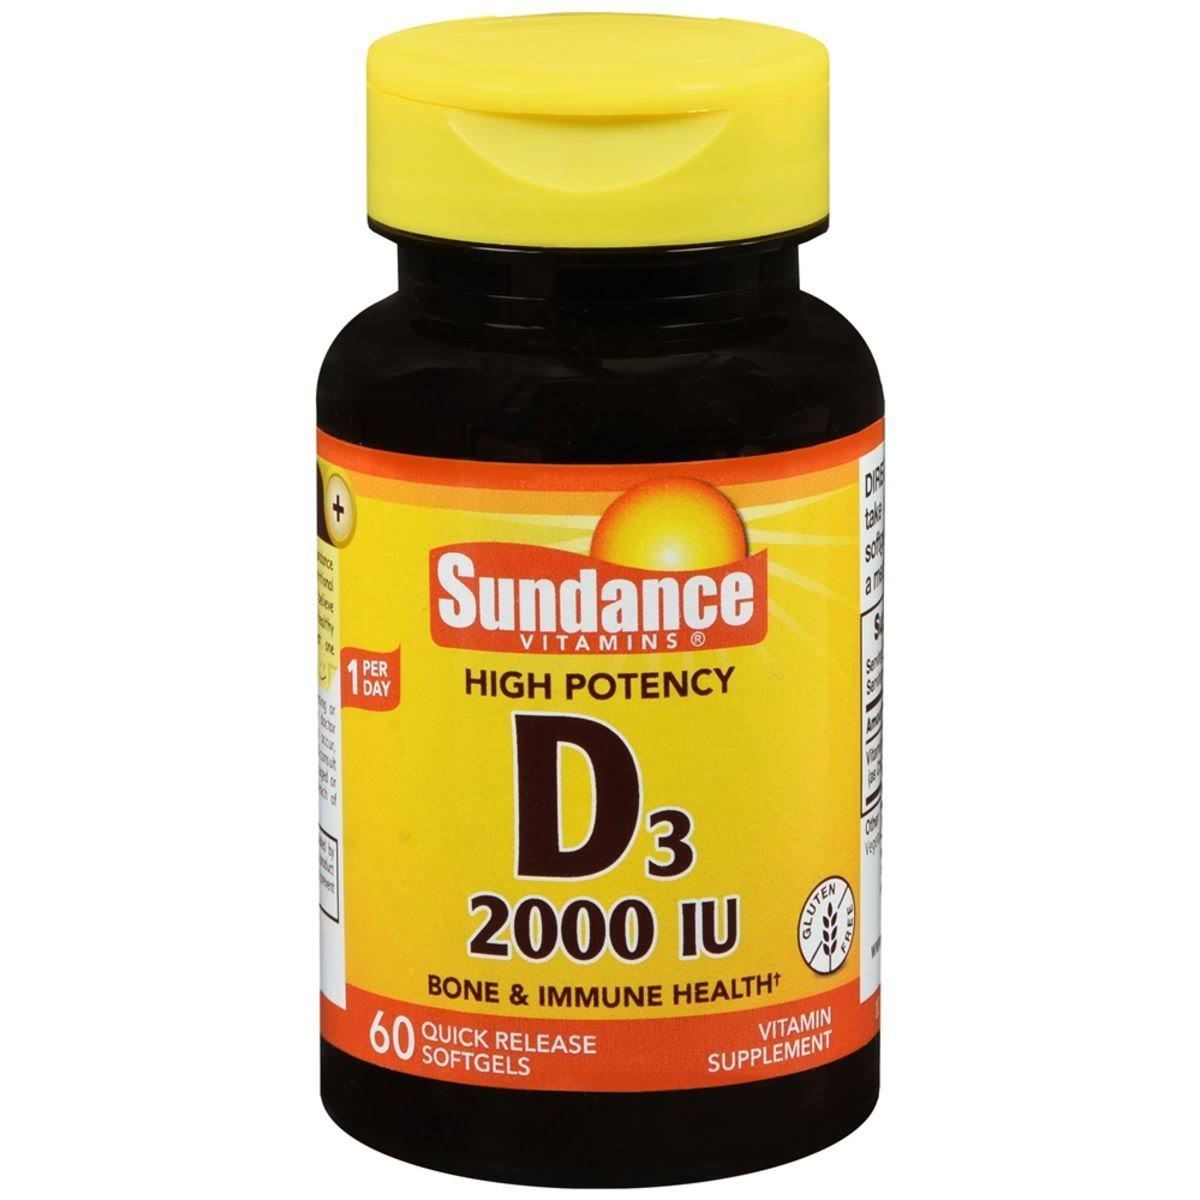 Sundance D3 2000 IU Quick Release Supplement - 60ct